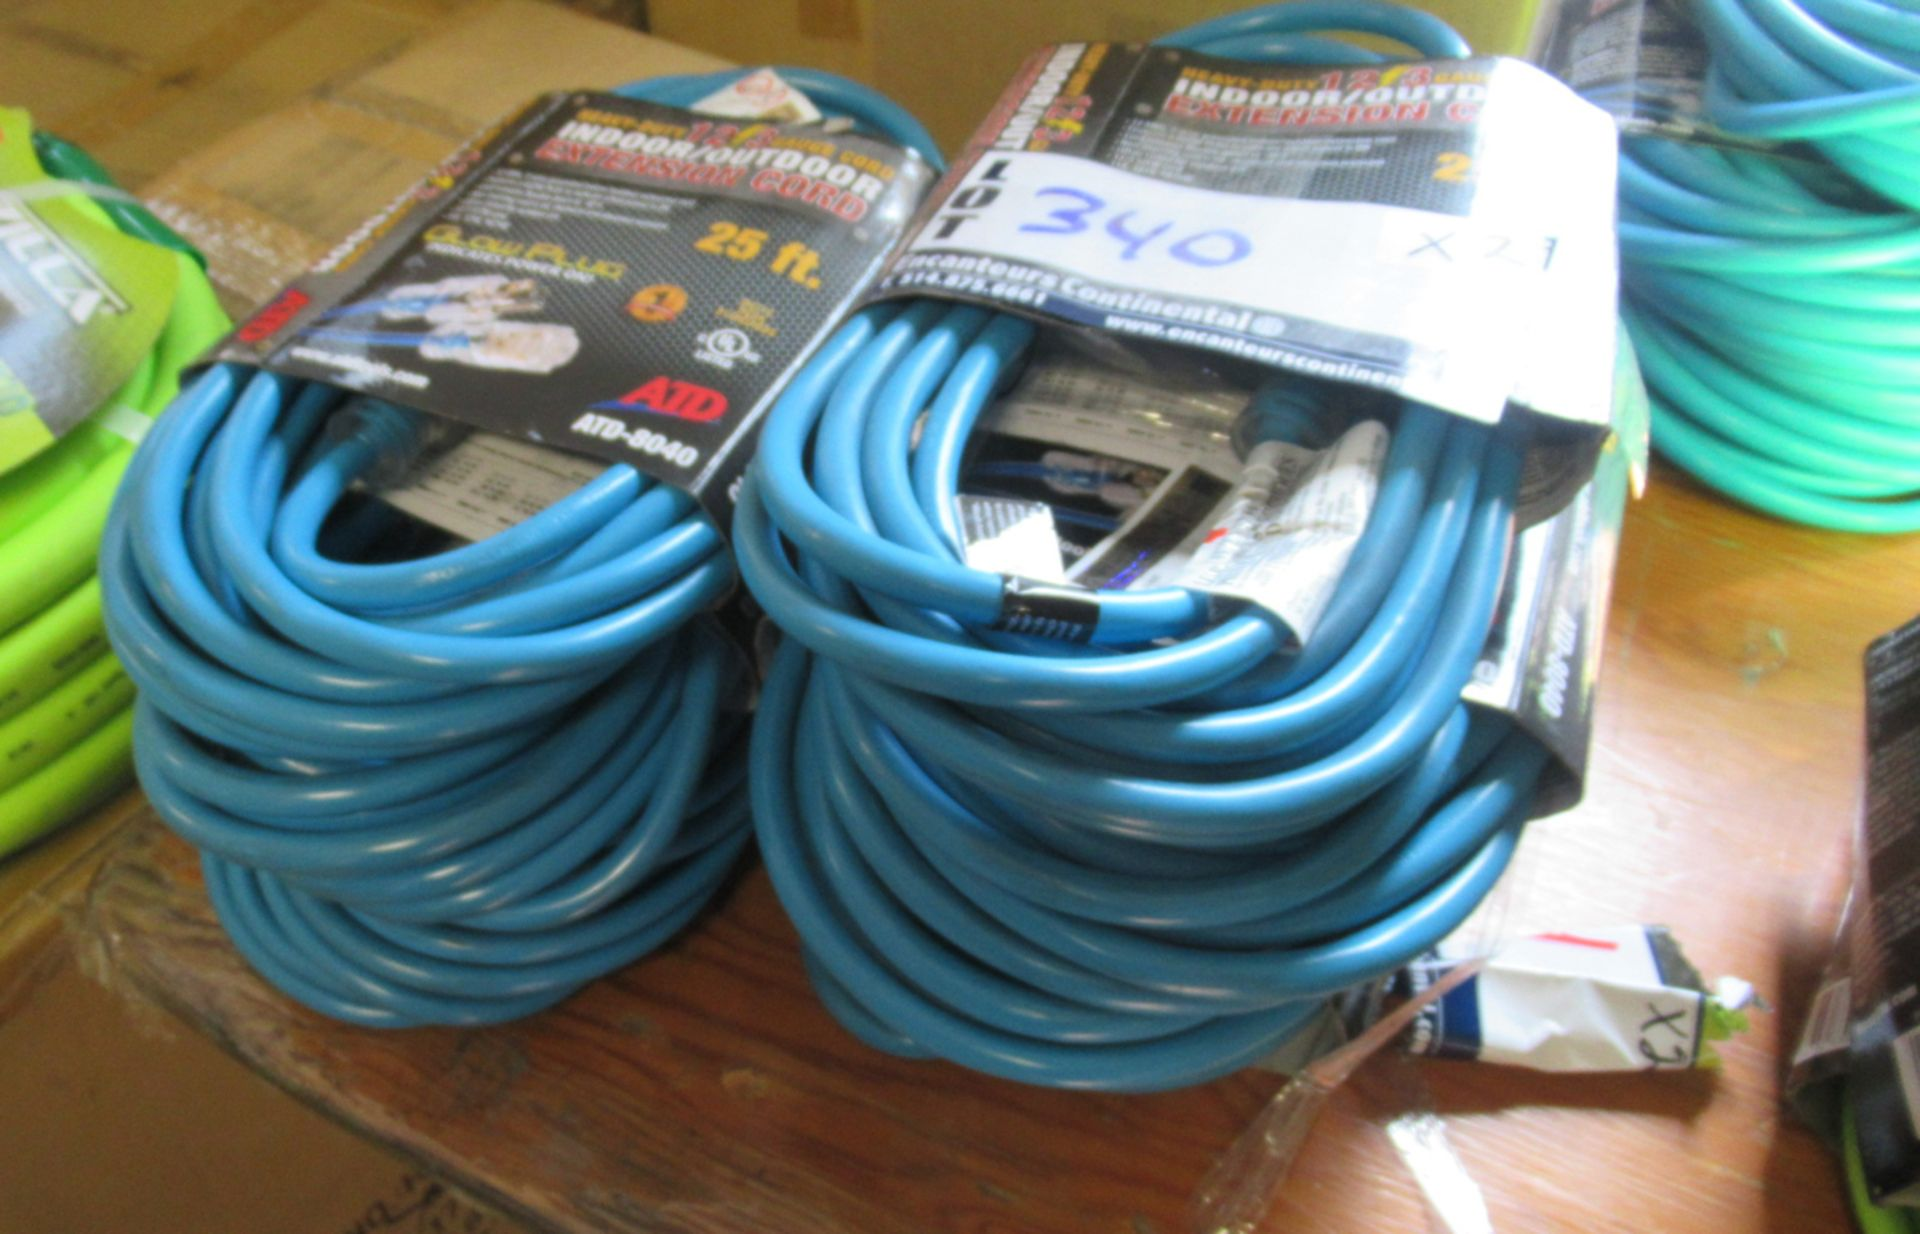 Lot 340 - 25' 12awg EXTENSION CORD ATD 8040